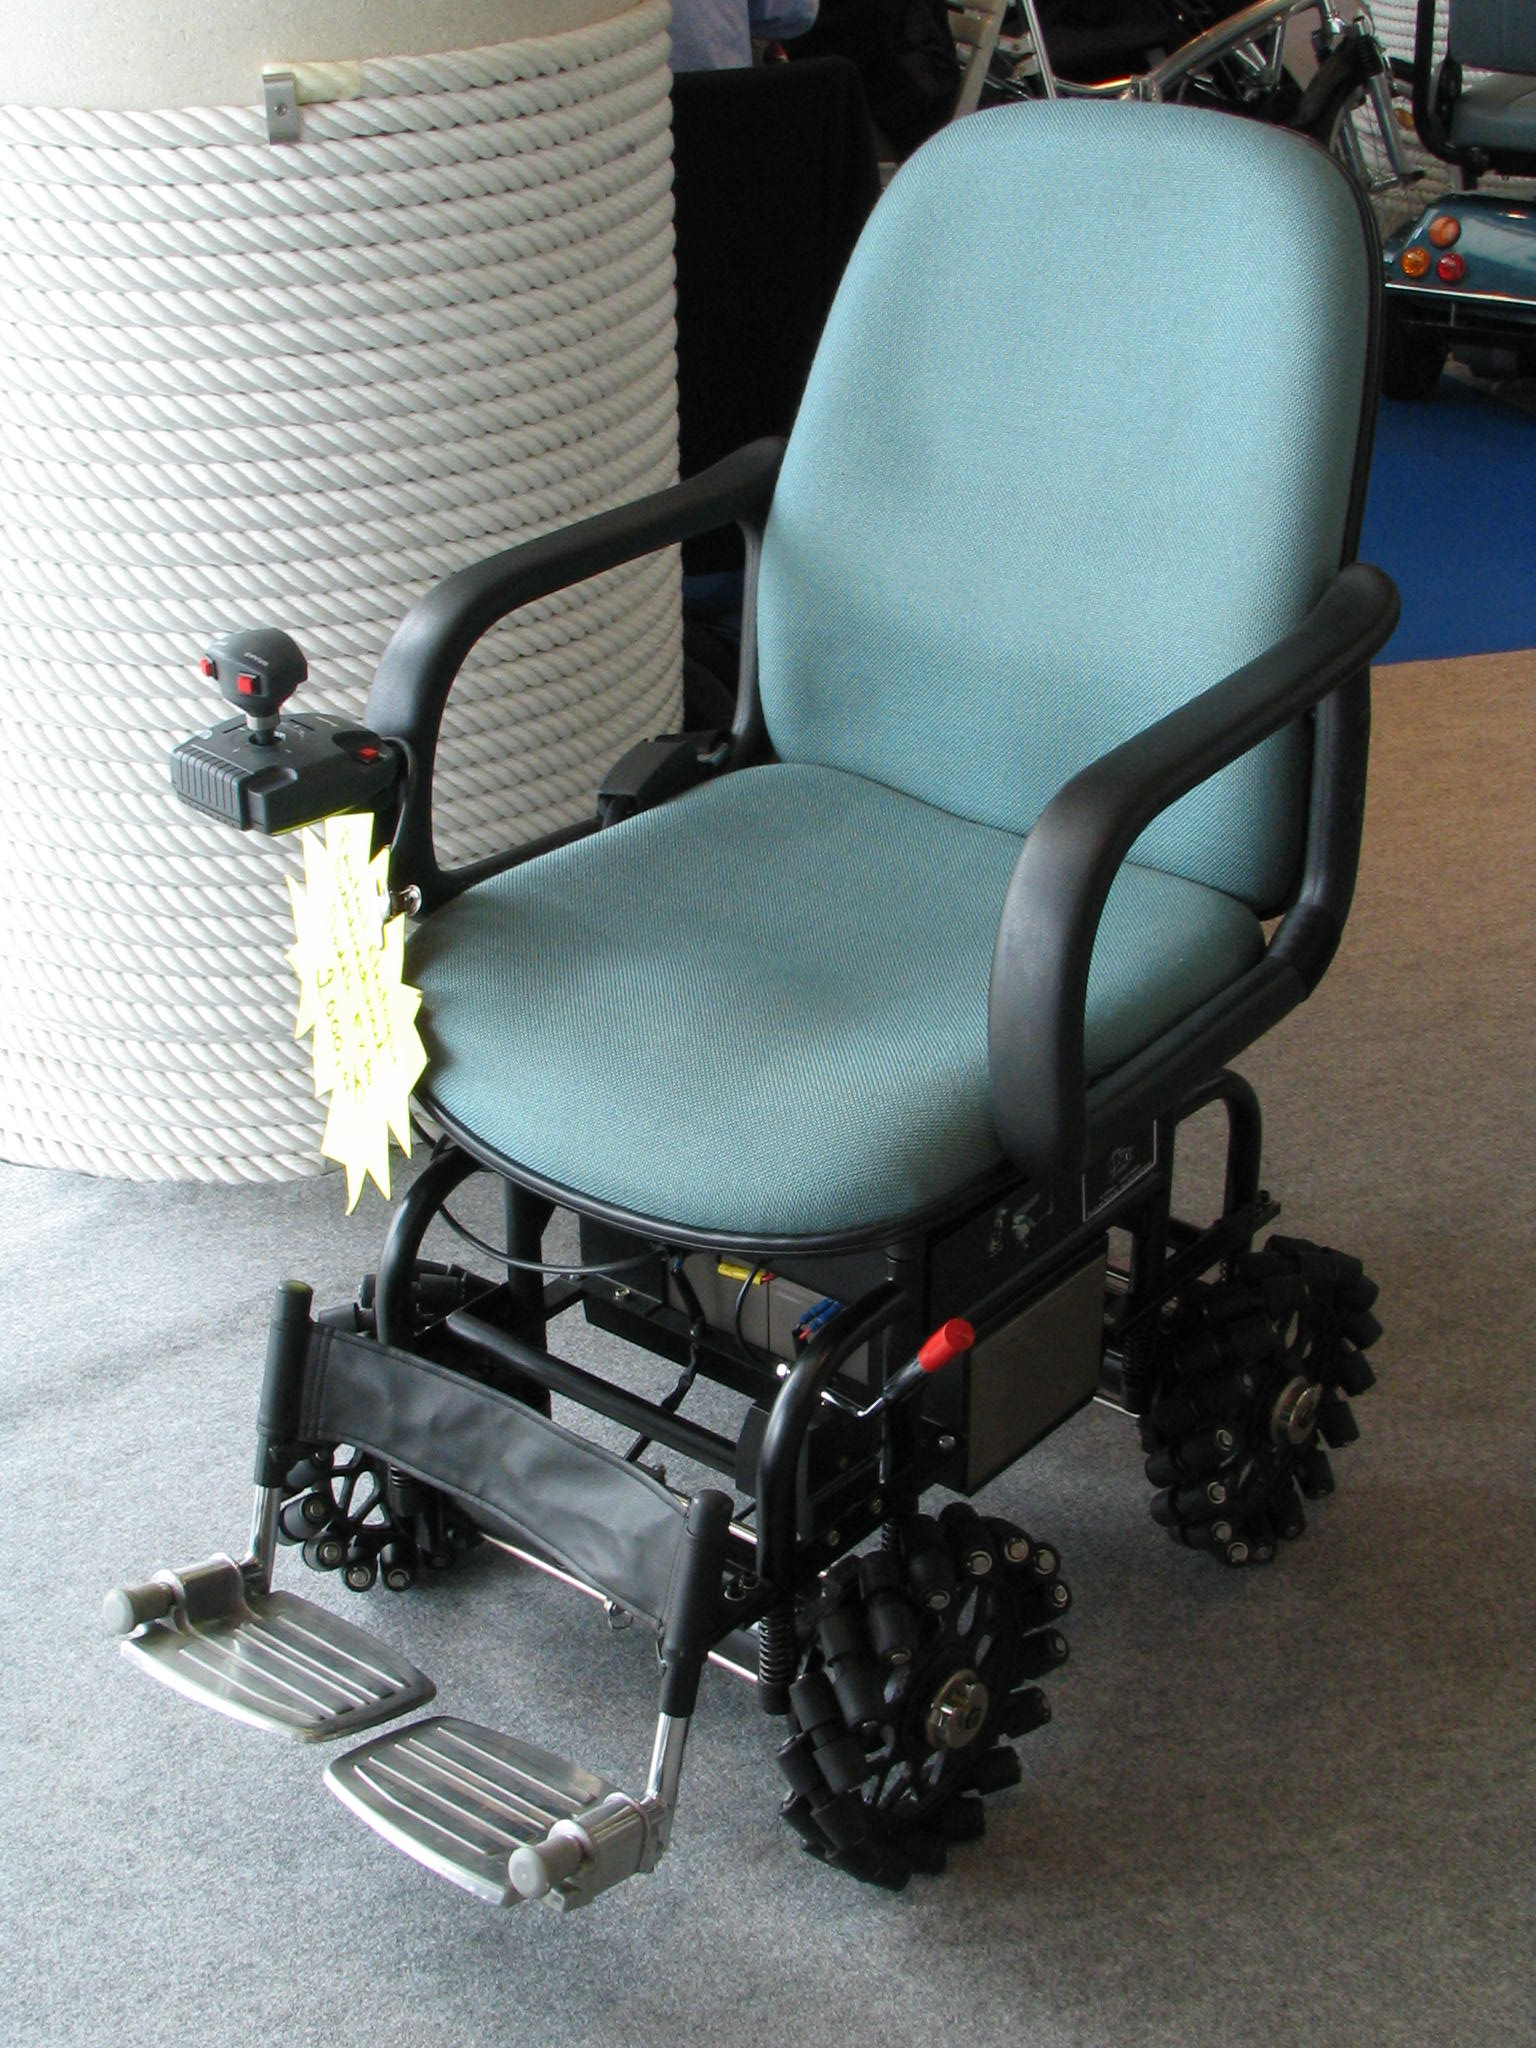 & Electric wheel chair